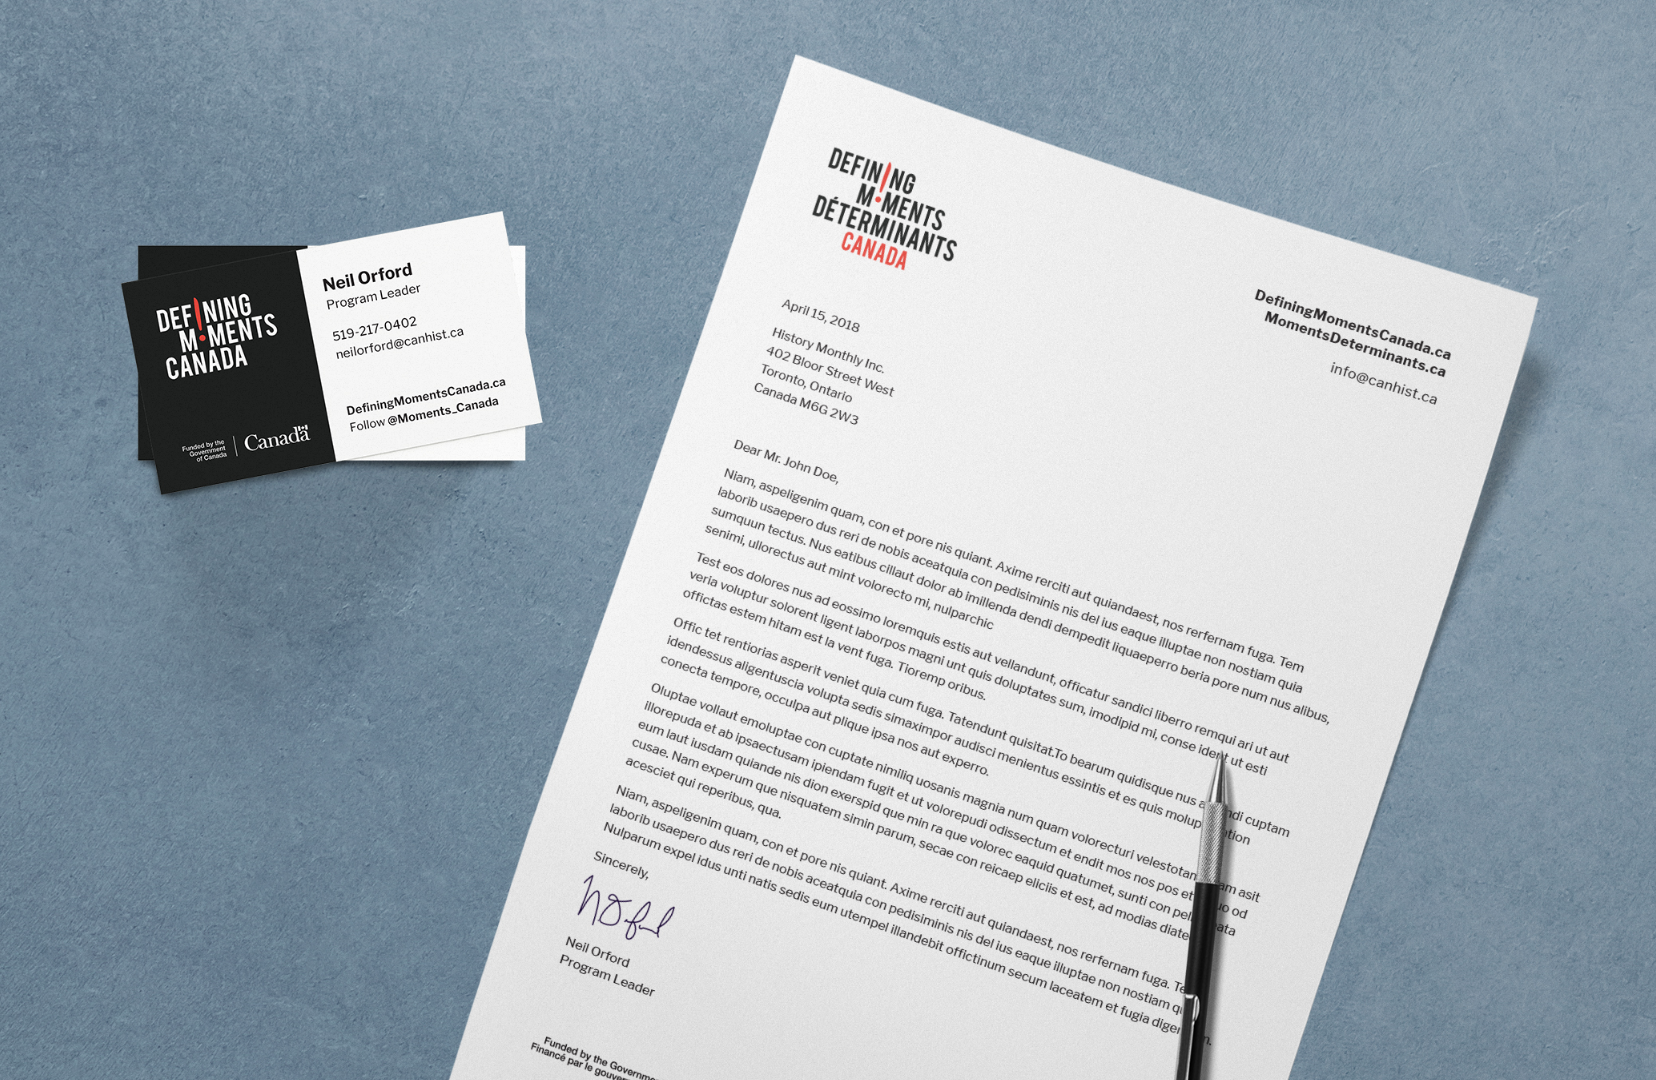 Top view of letterhead and business card designs for Defining Moments Canada